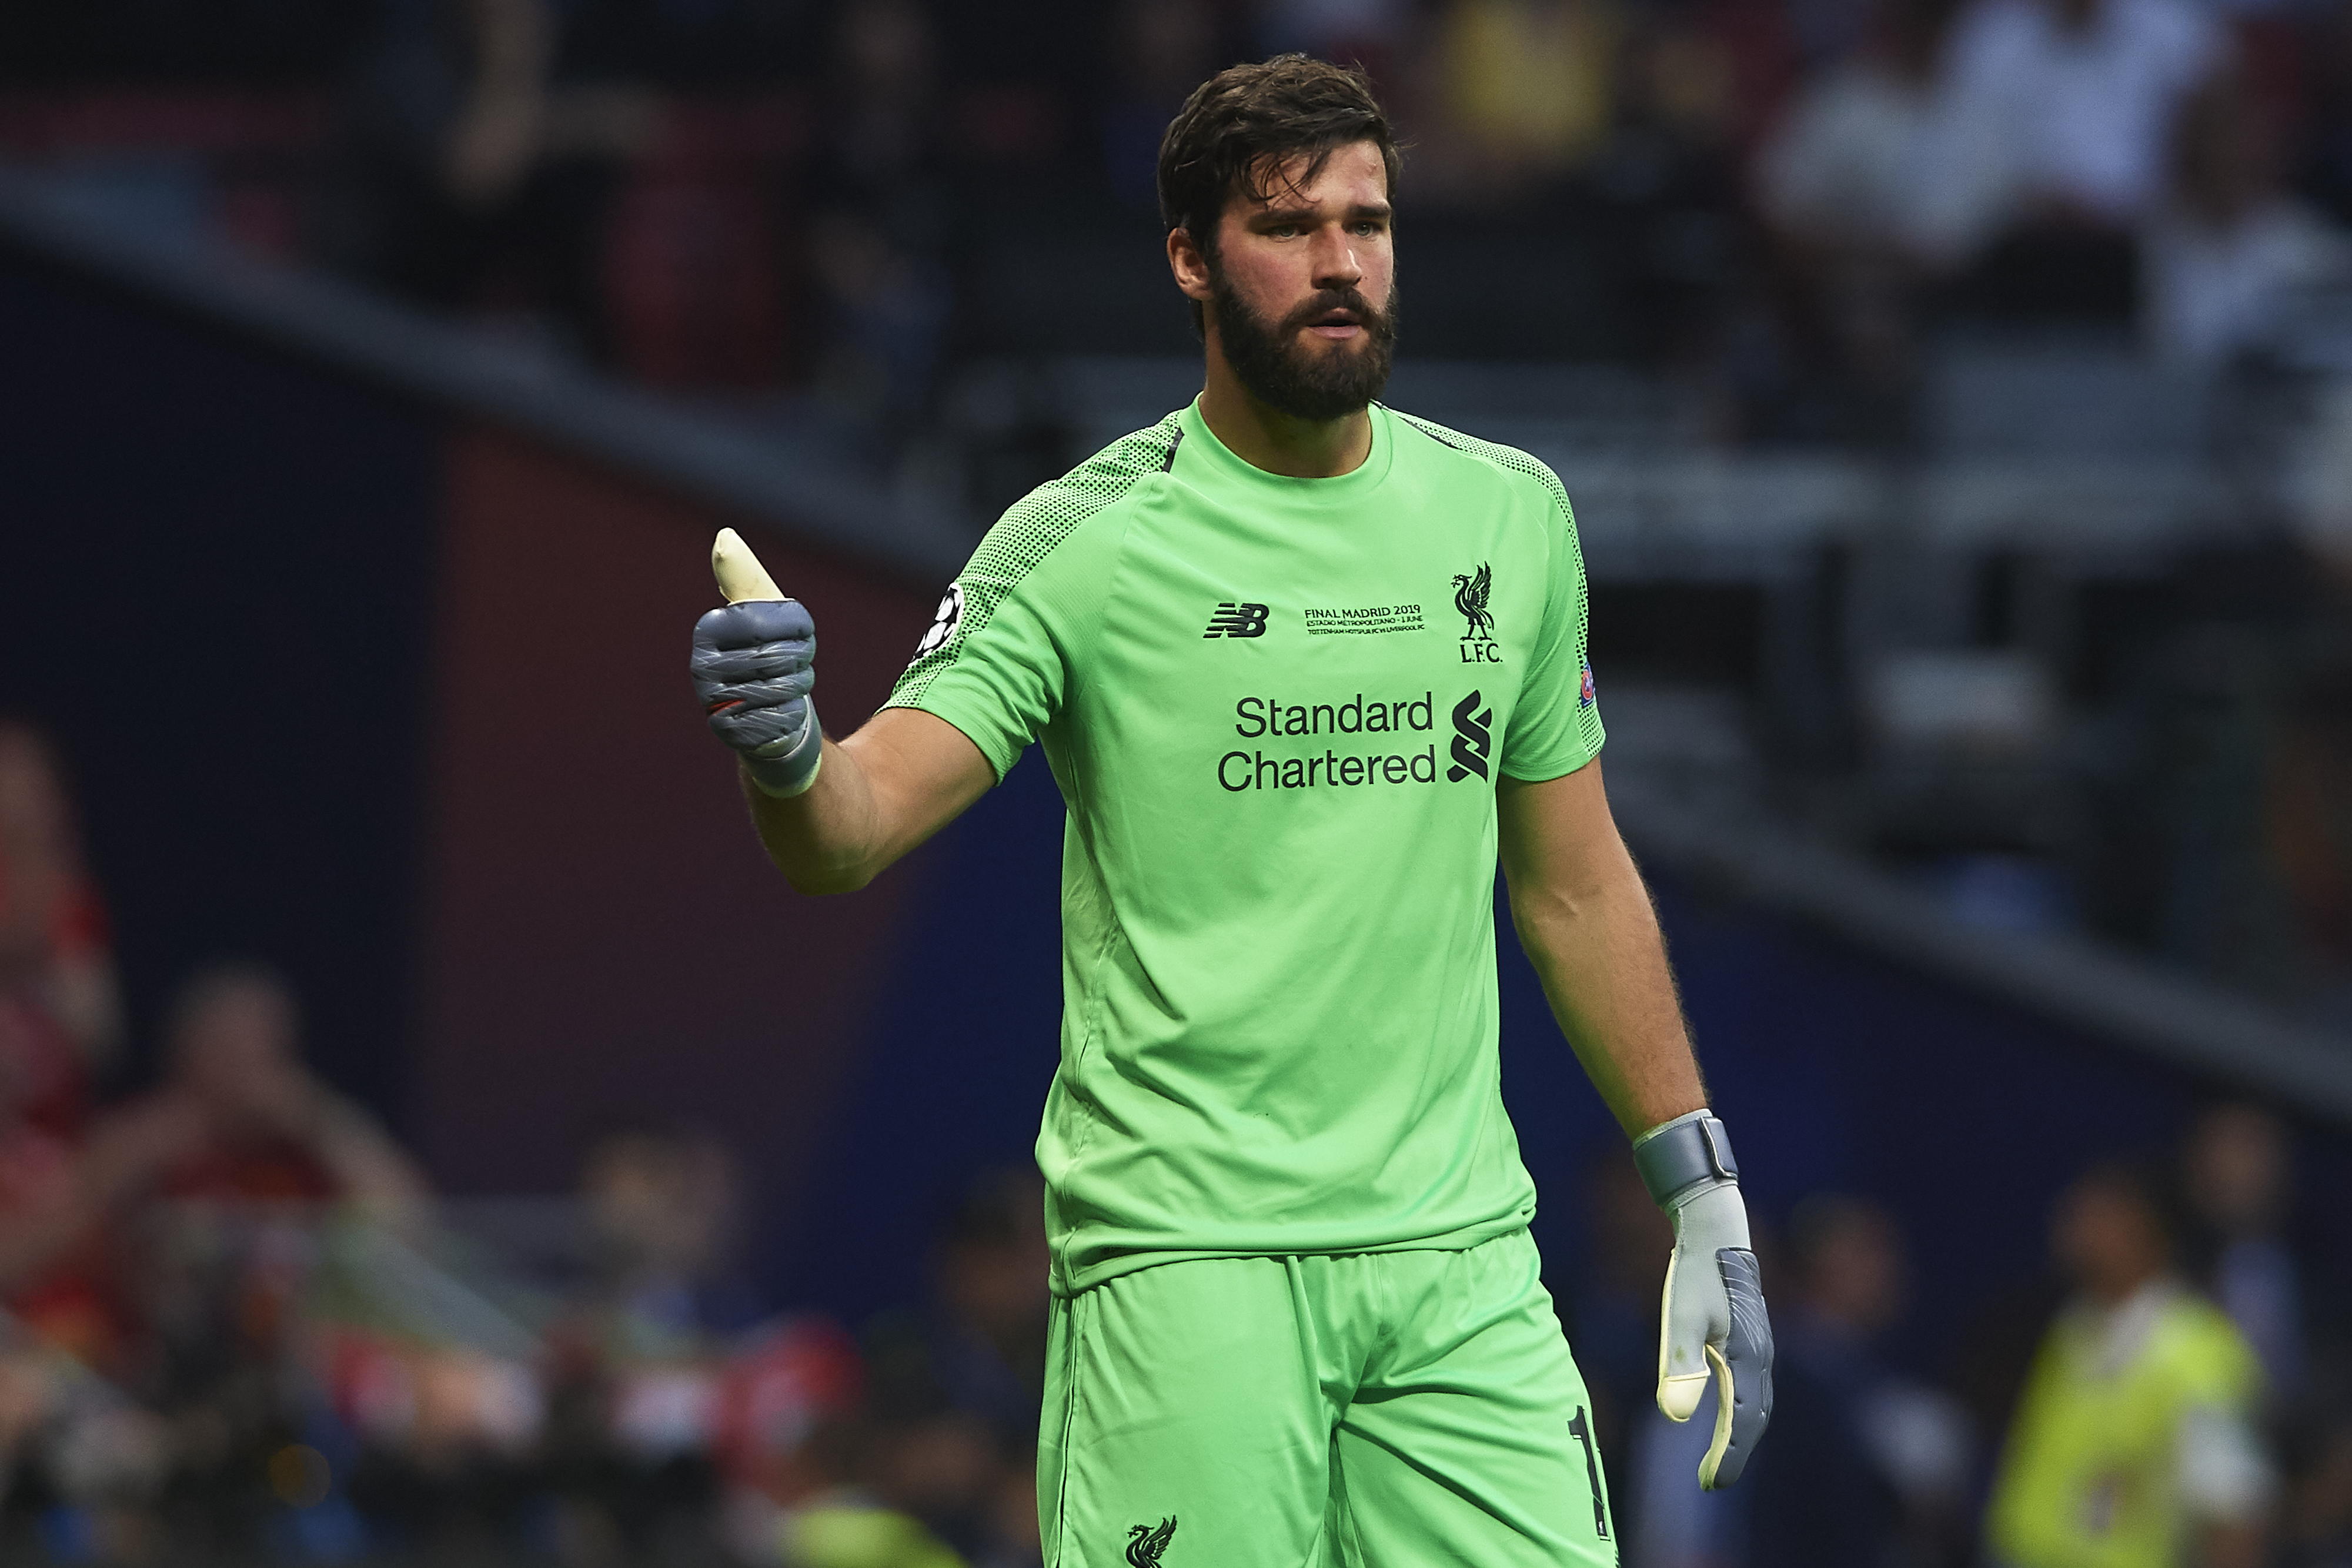 Exclusive: Liverpool And Brazil Star Alisson Becker Shares